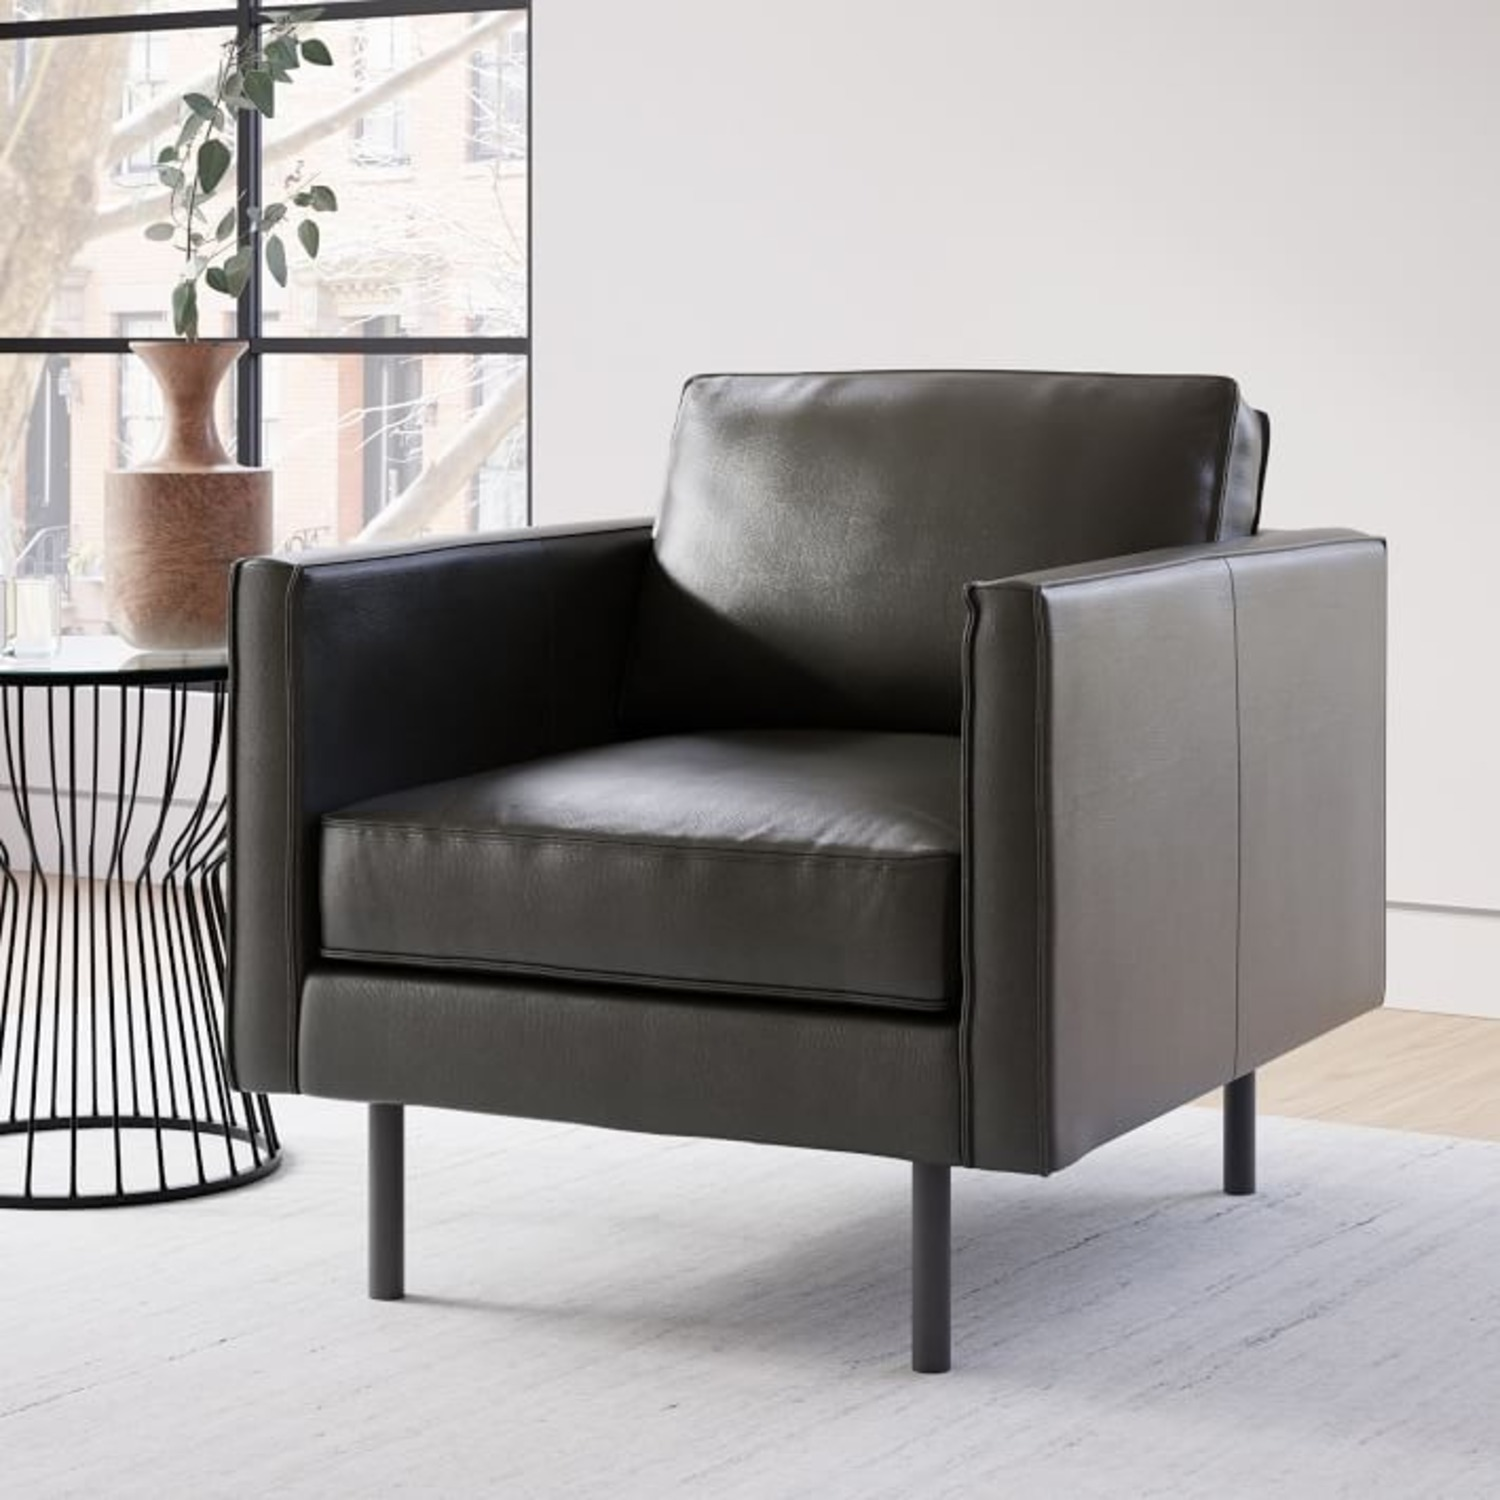 West Elm Axel Leather Armchair - image-1